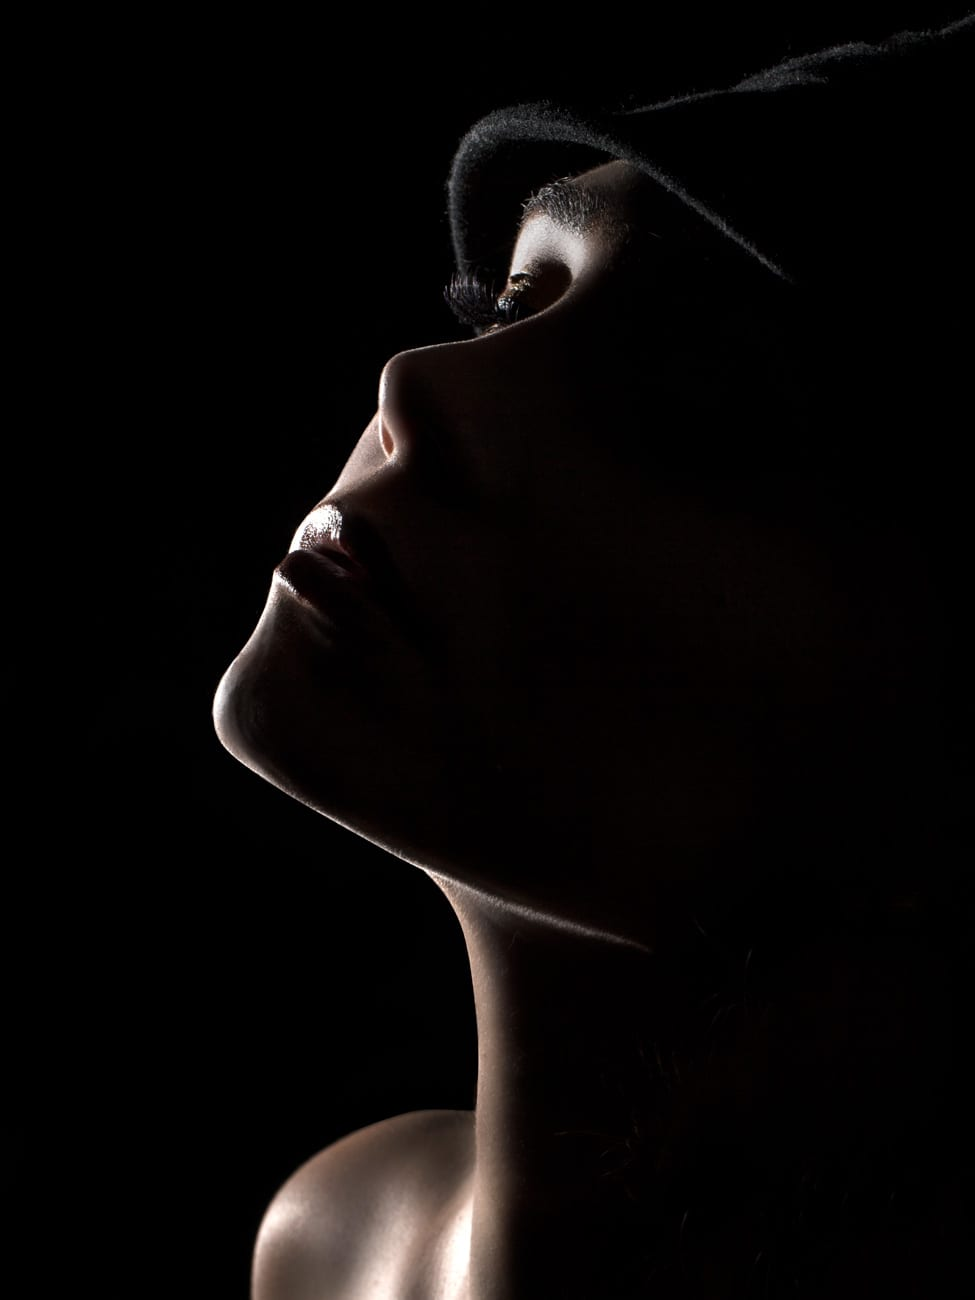 Fine Line. Toronto Creative Beauty Photographer.